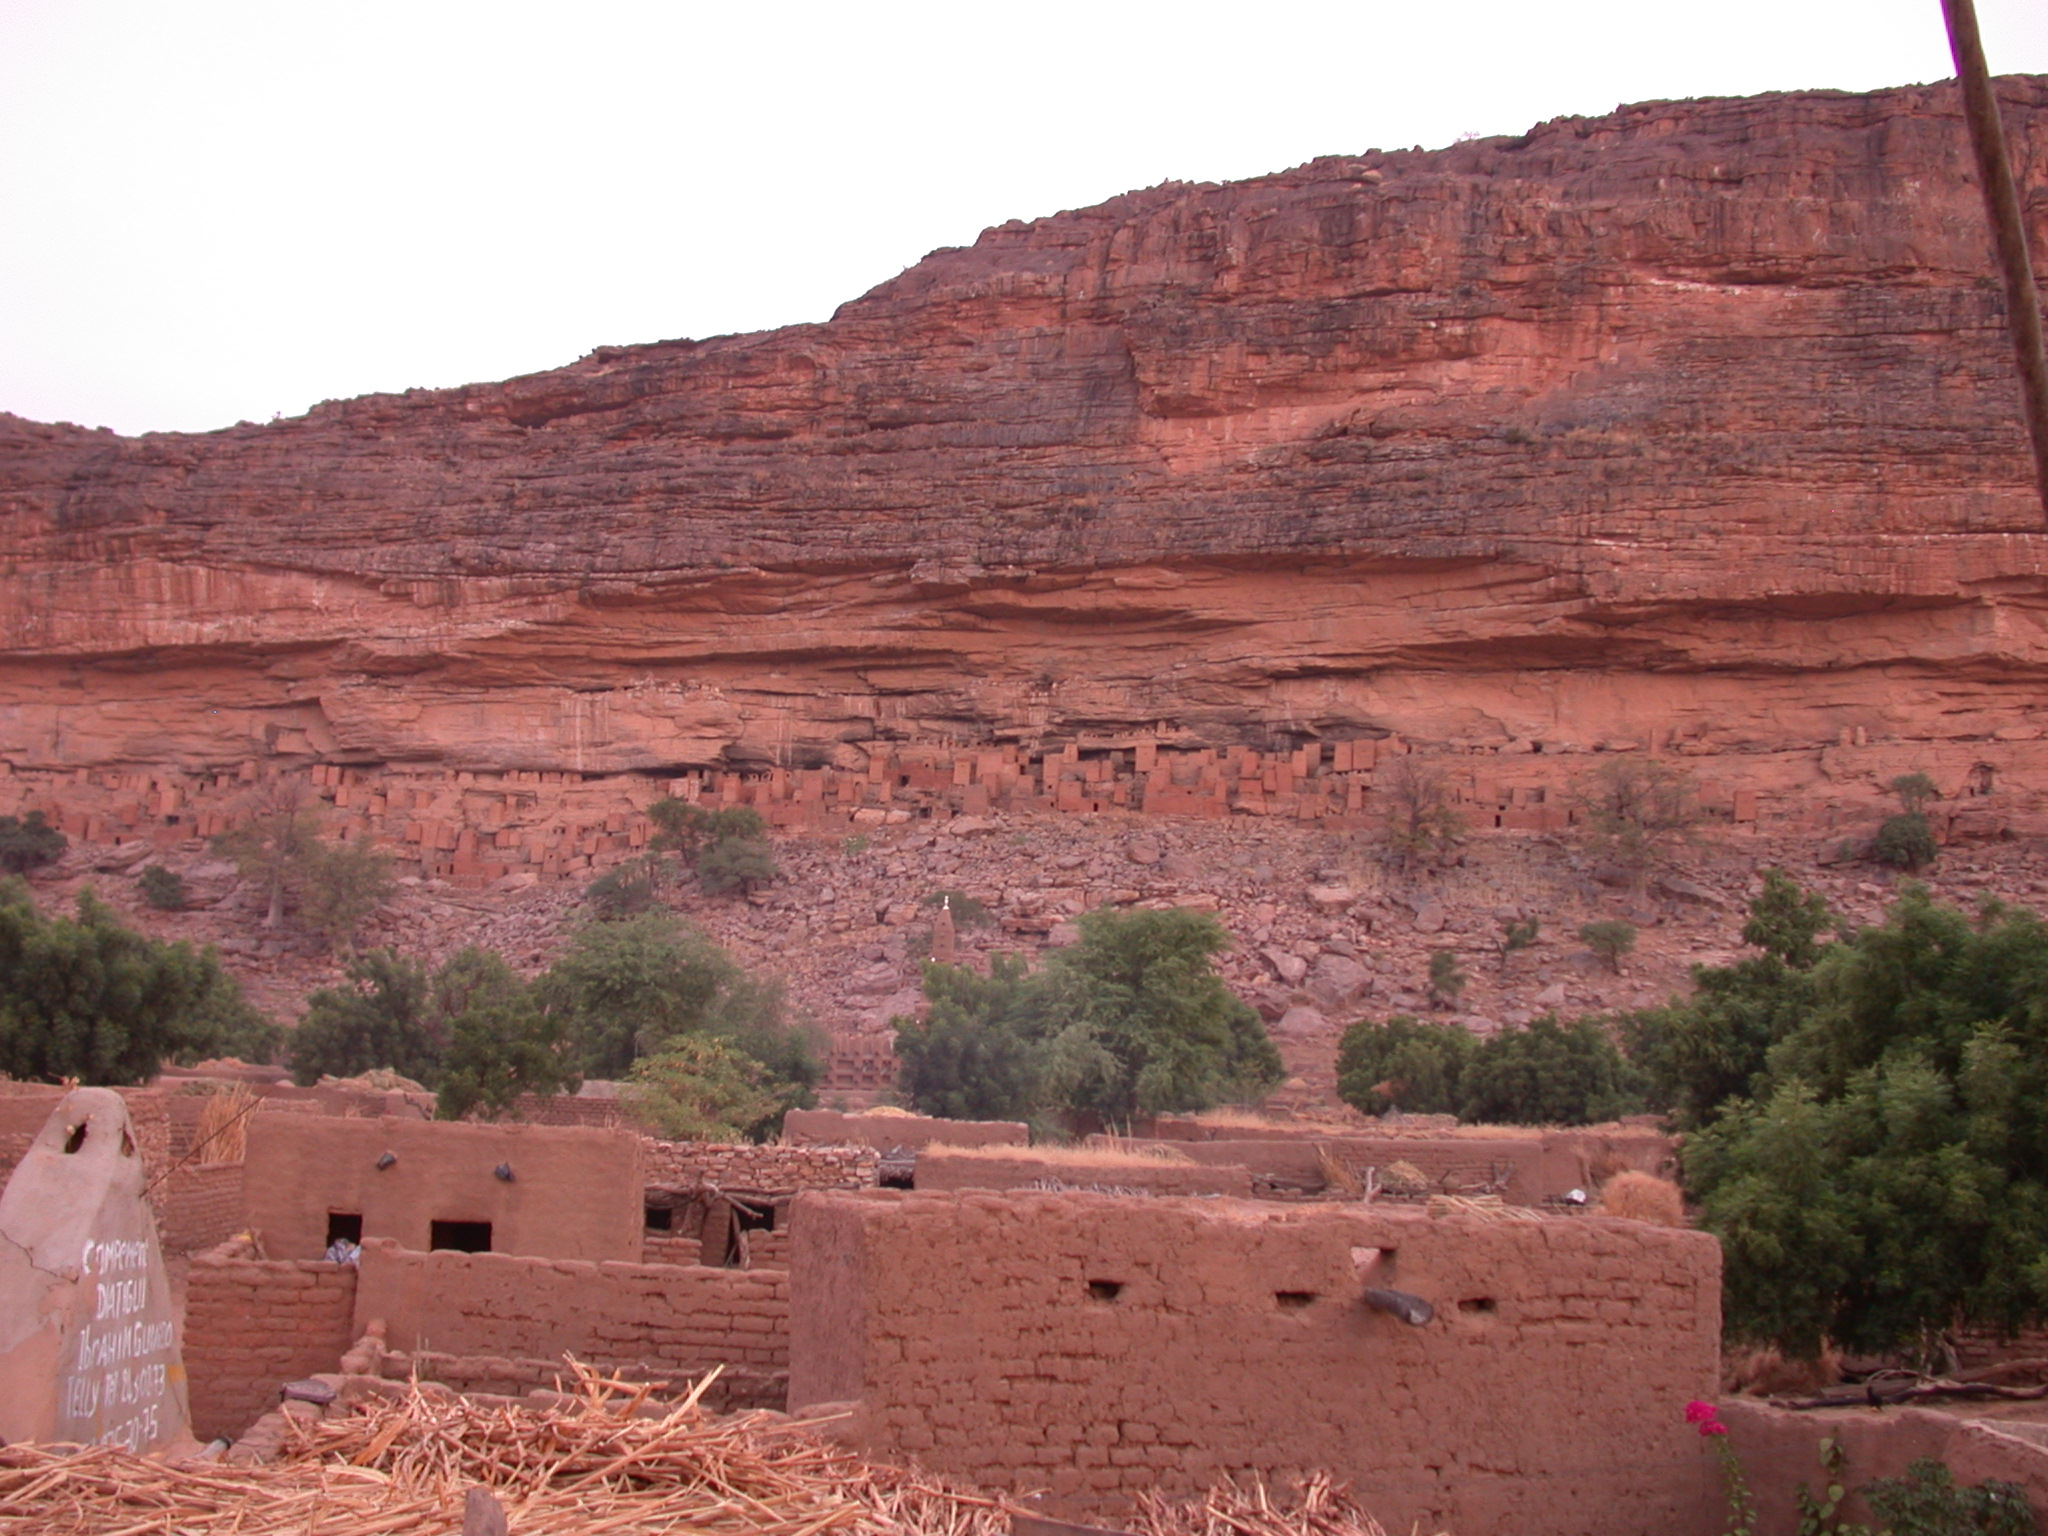 View of Falaise or Escarpment From Telli Village, Dogon Country, Mali